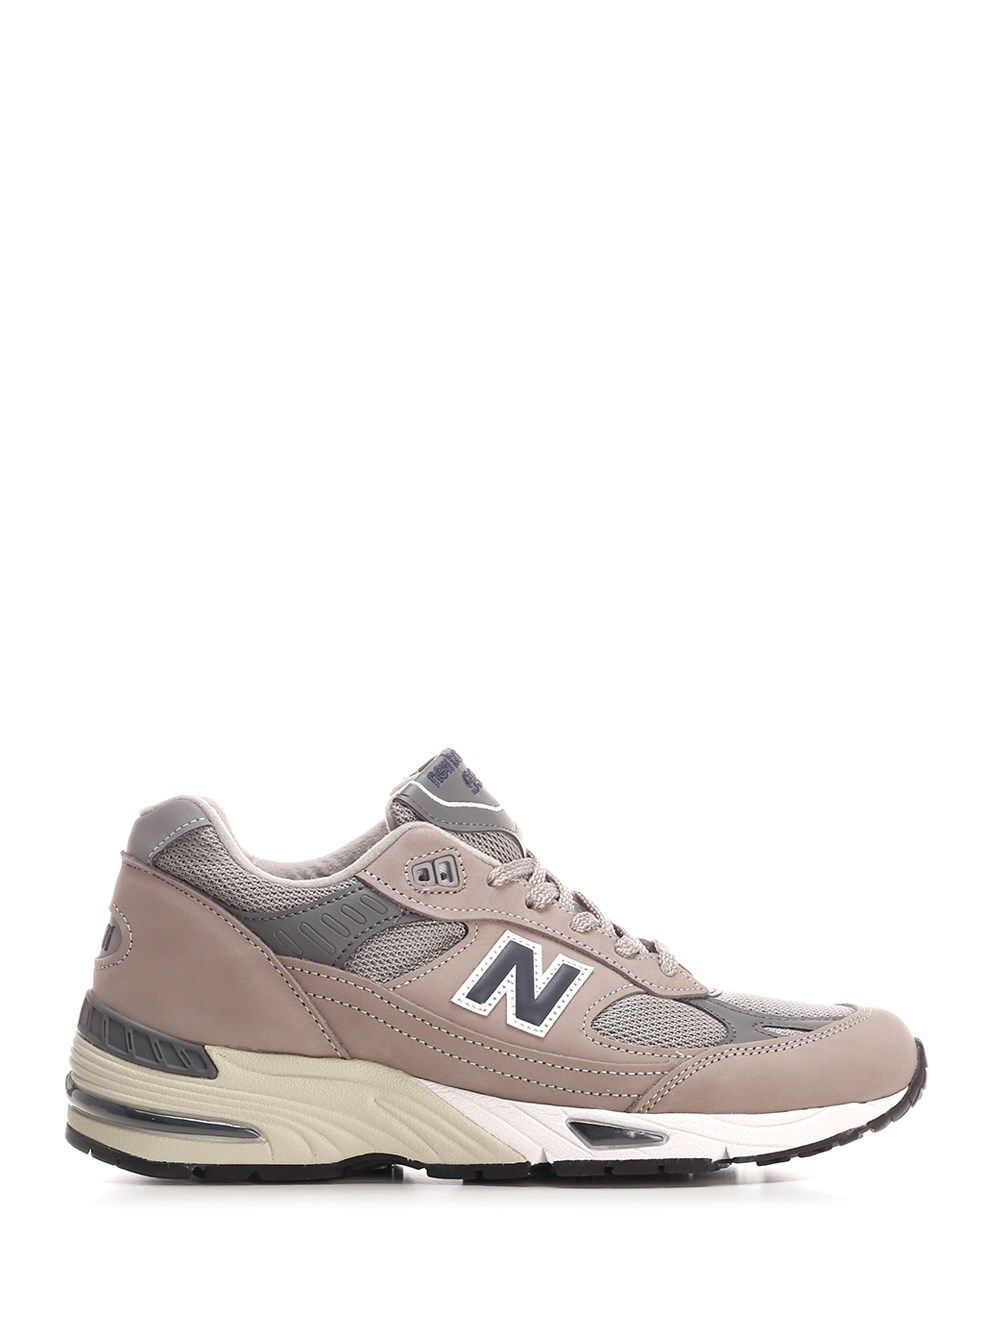 New Balance Leathers NEW BALANCE MEN'S M991ANIGREYNAVY GREY OTHER MATERIALS SNEAKERS